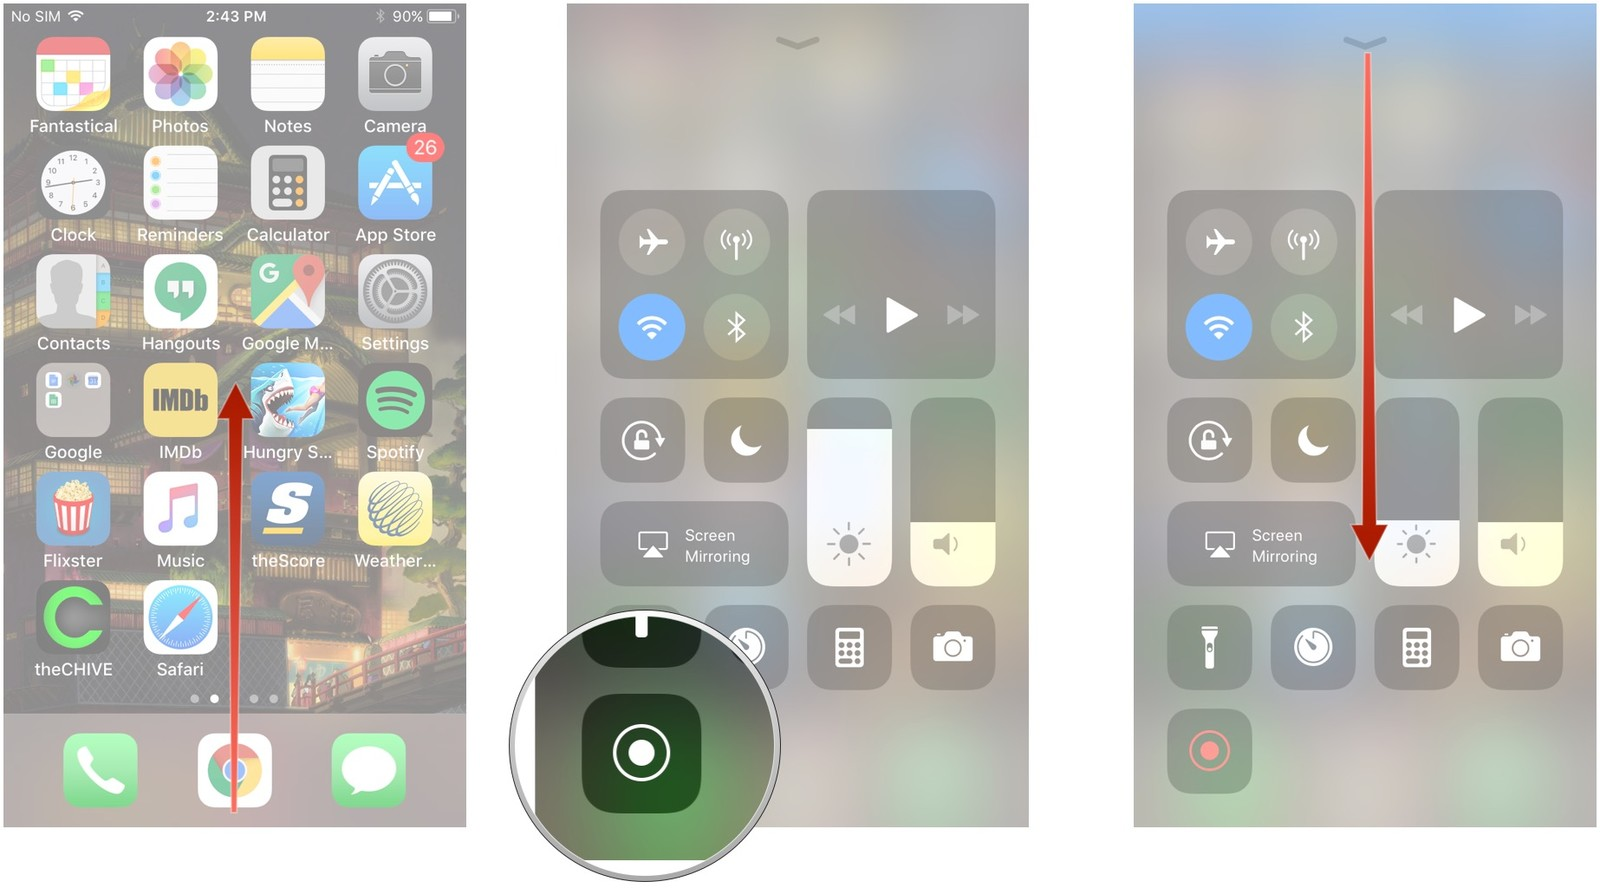 Swipe up to open Control Center, tap the screen recording button, swipe down to dismiss Control Center